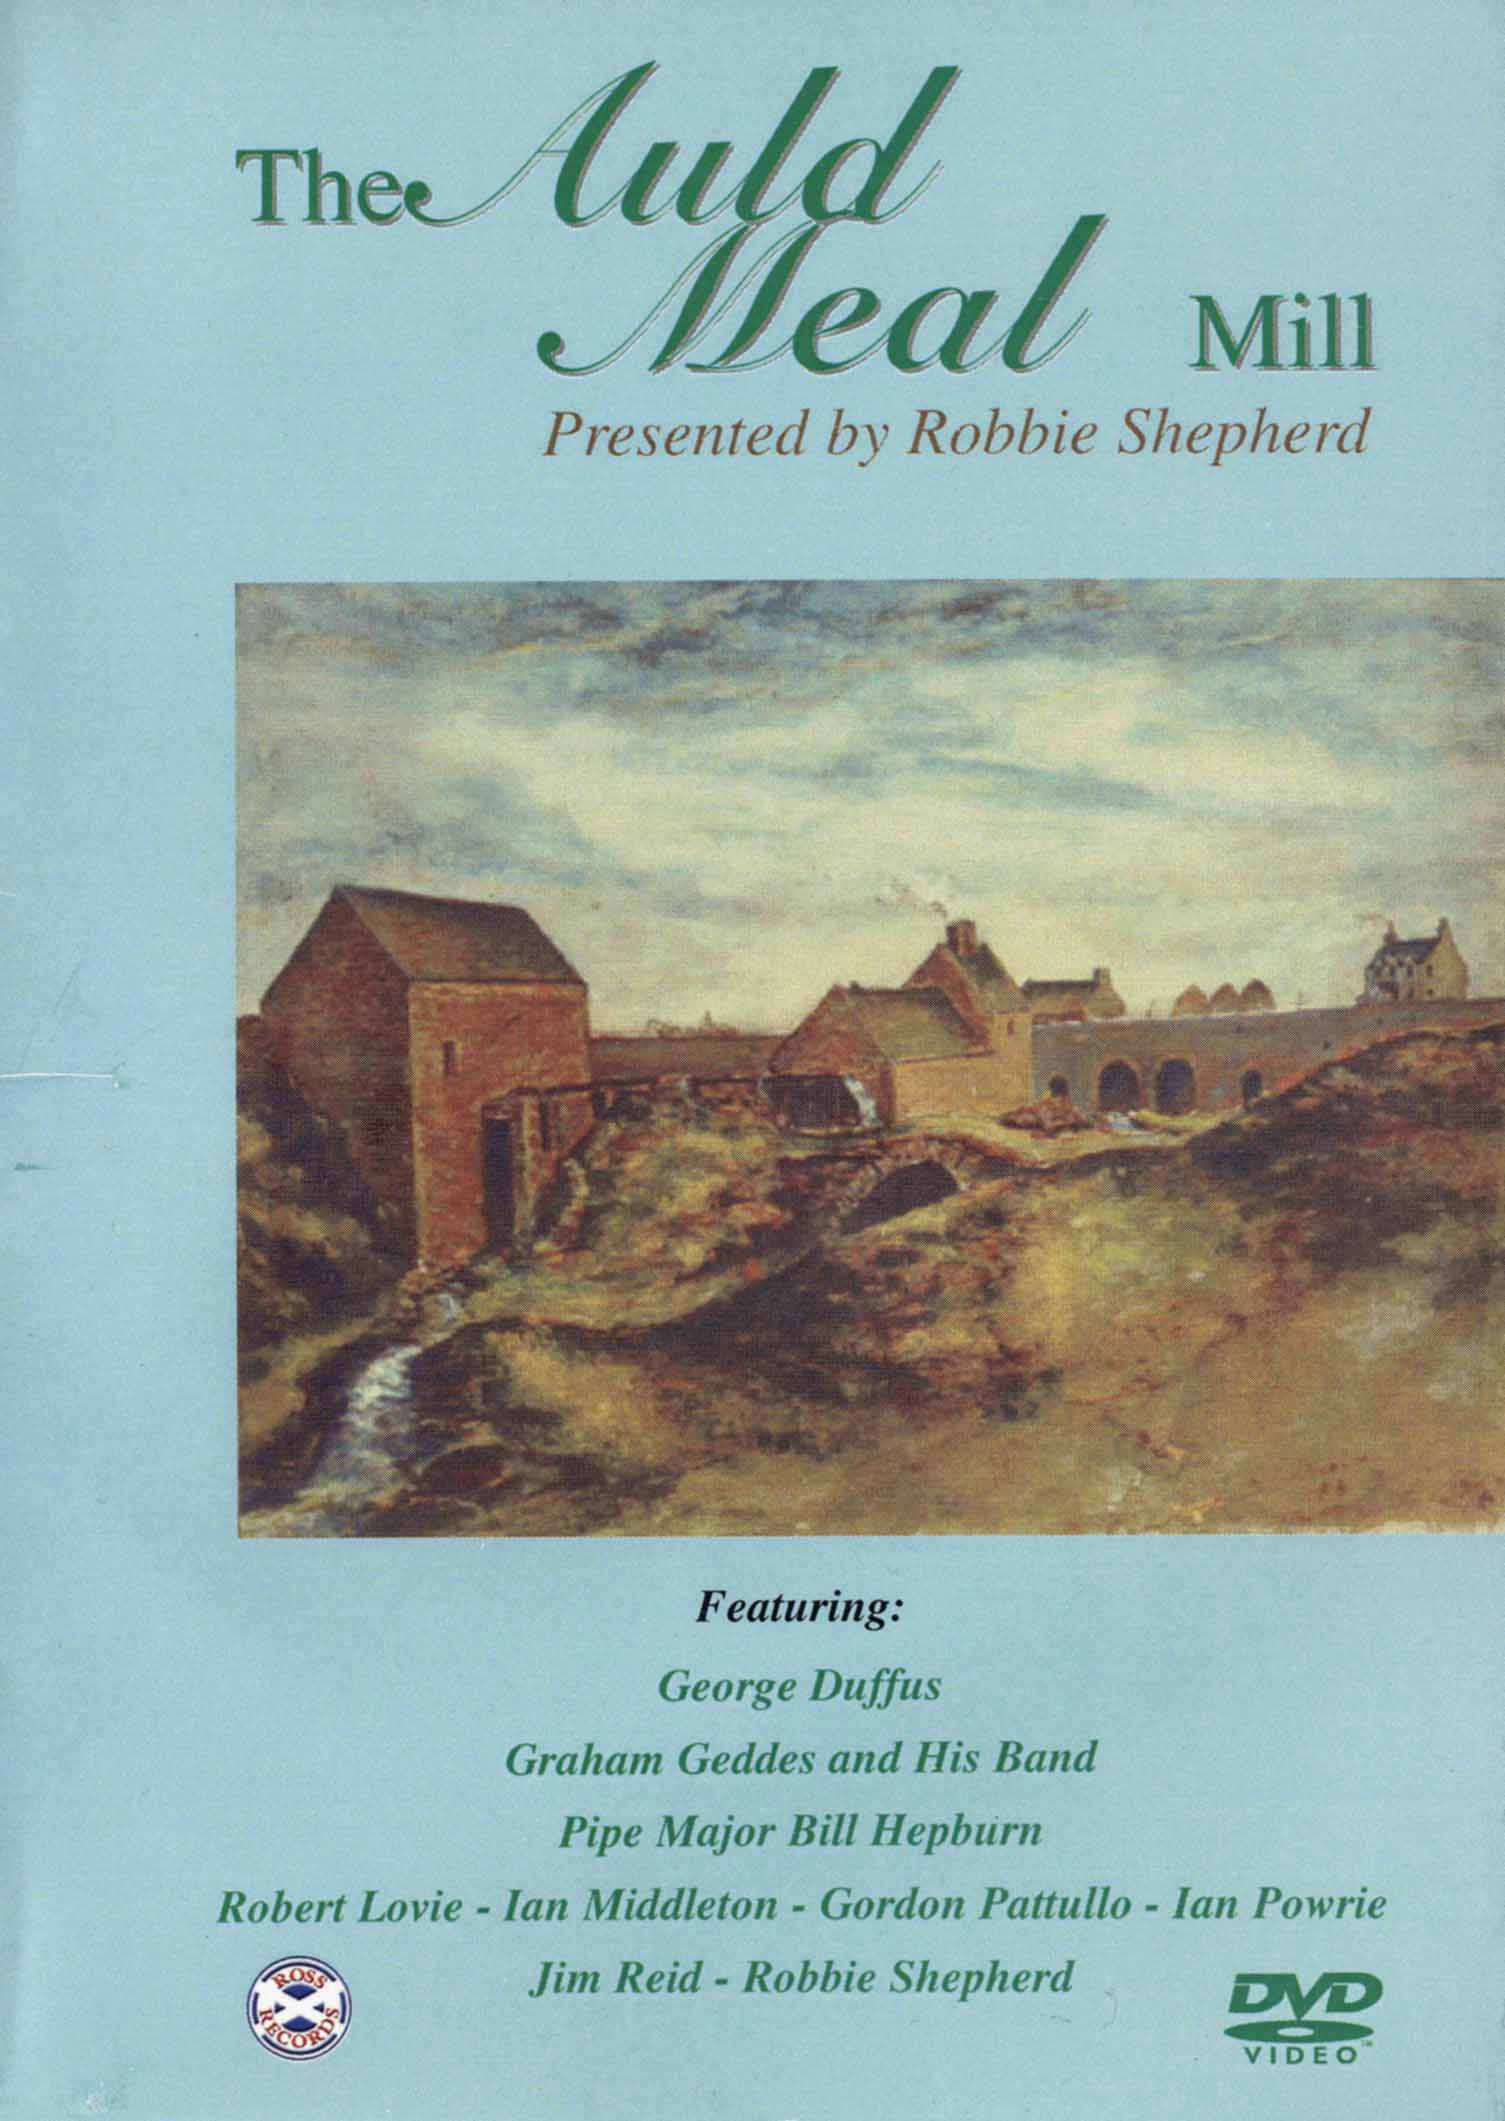 The Auld Meal: Mill